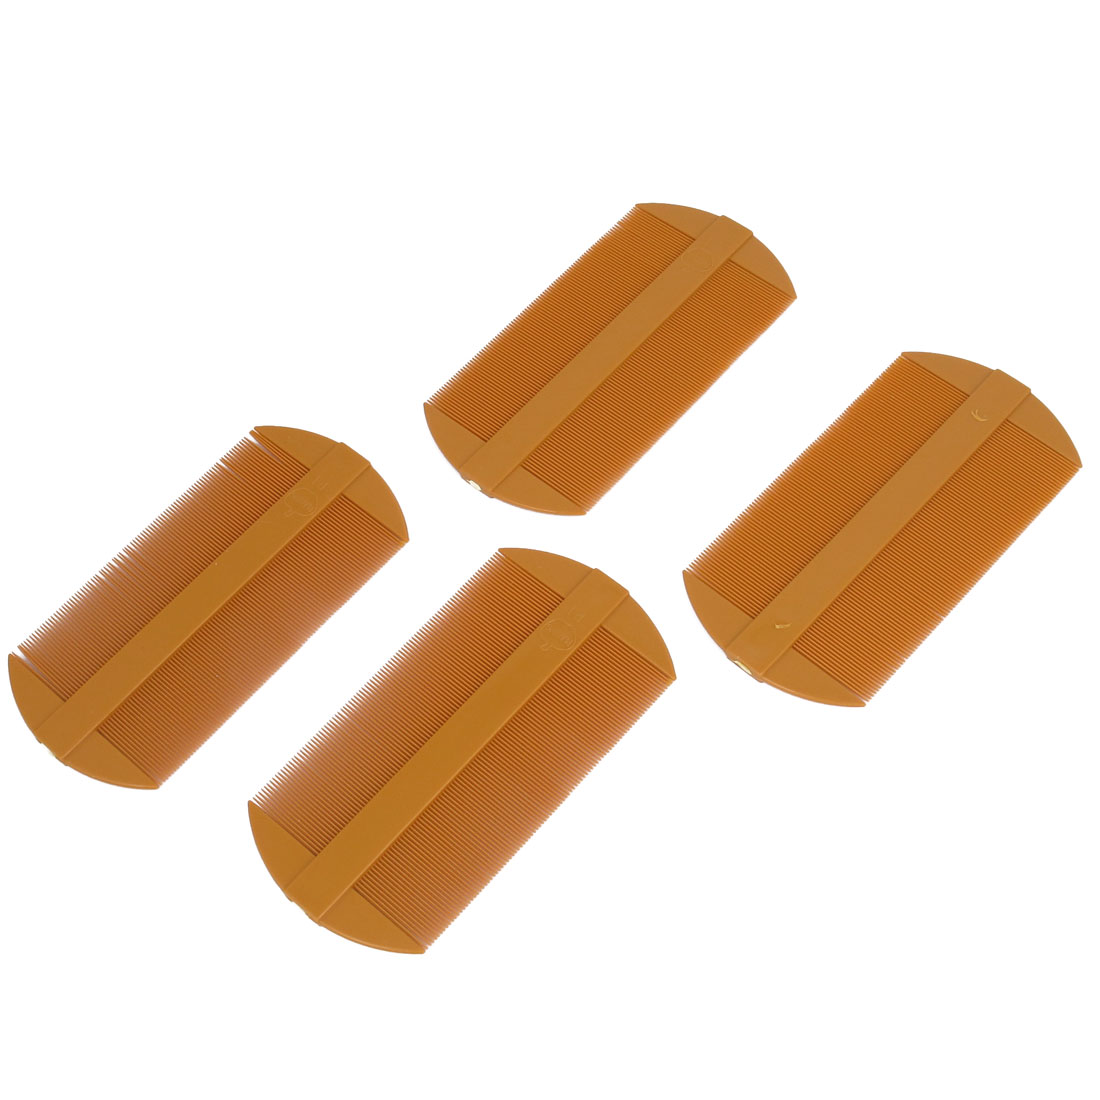 4 Pcs Orange Plastic Straight Tooth Double End Hairdressing Brush Comb for Lady